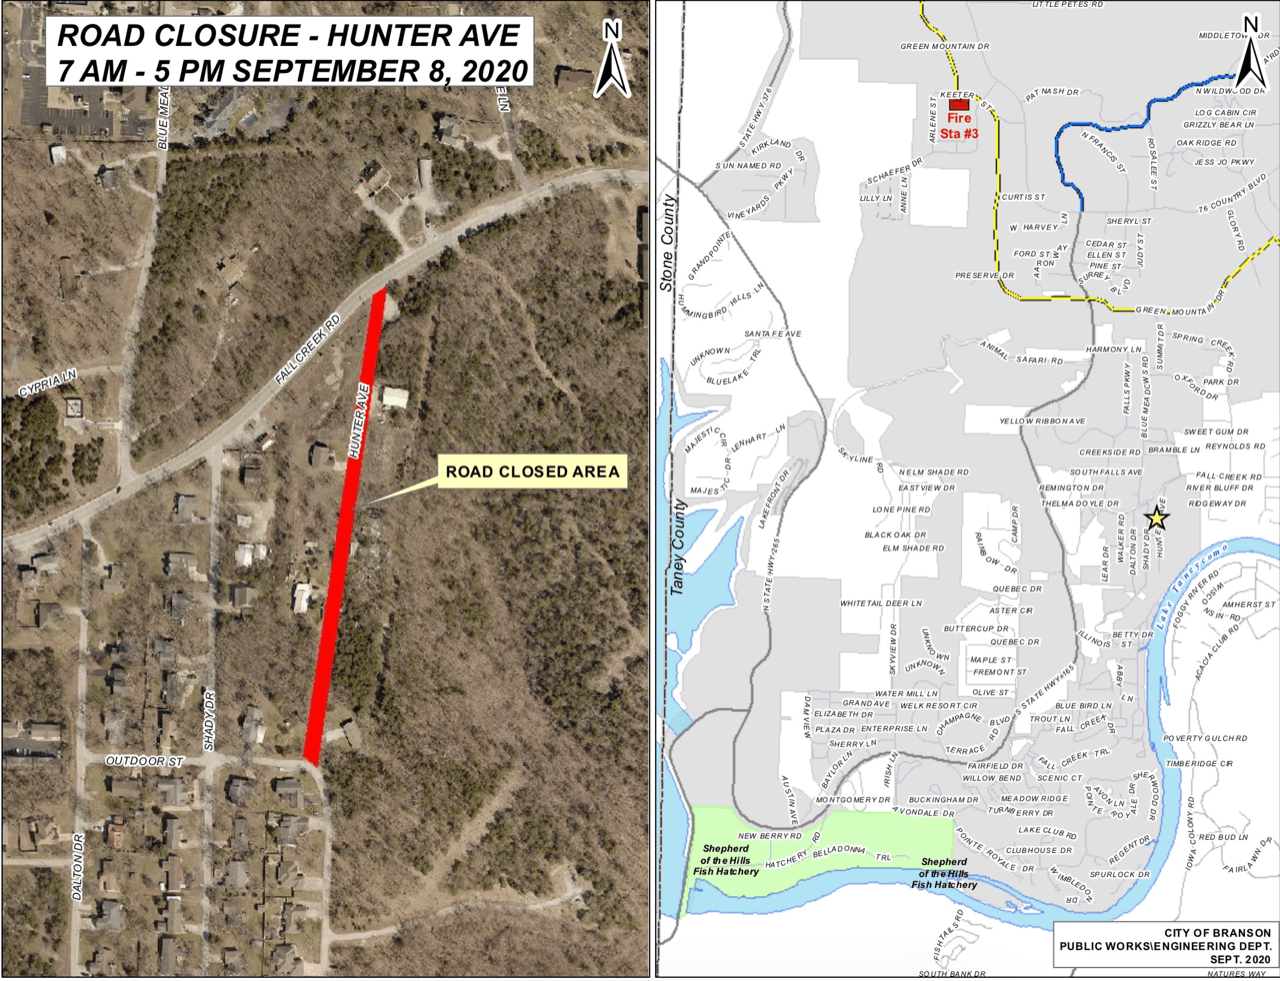 Hunter Ave Closed September 8